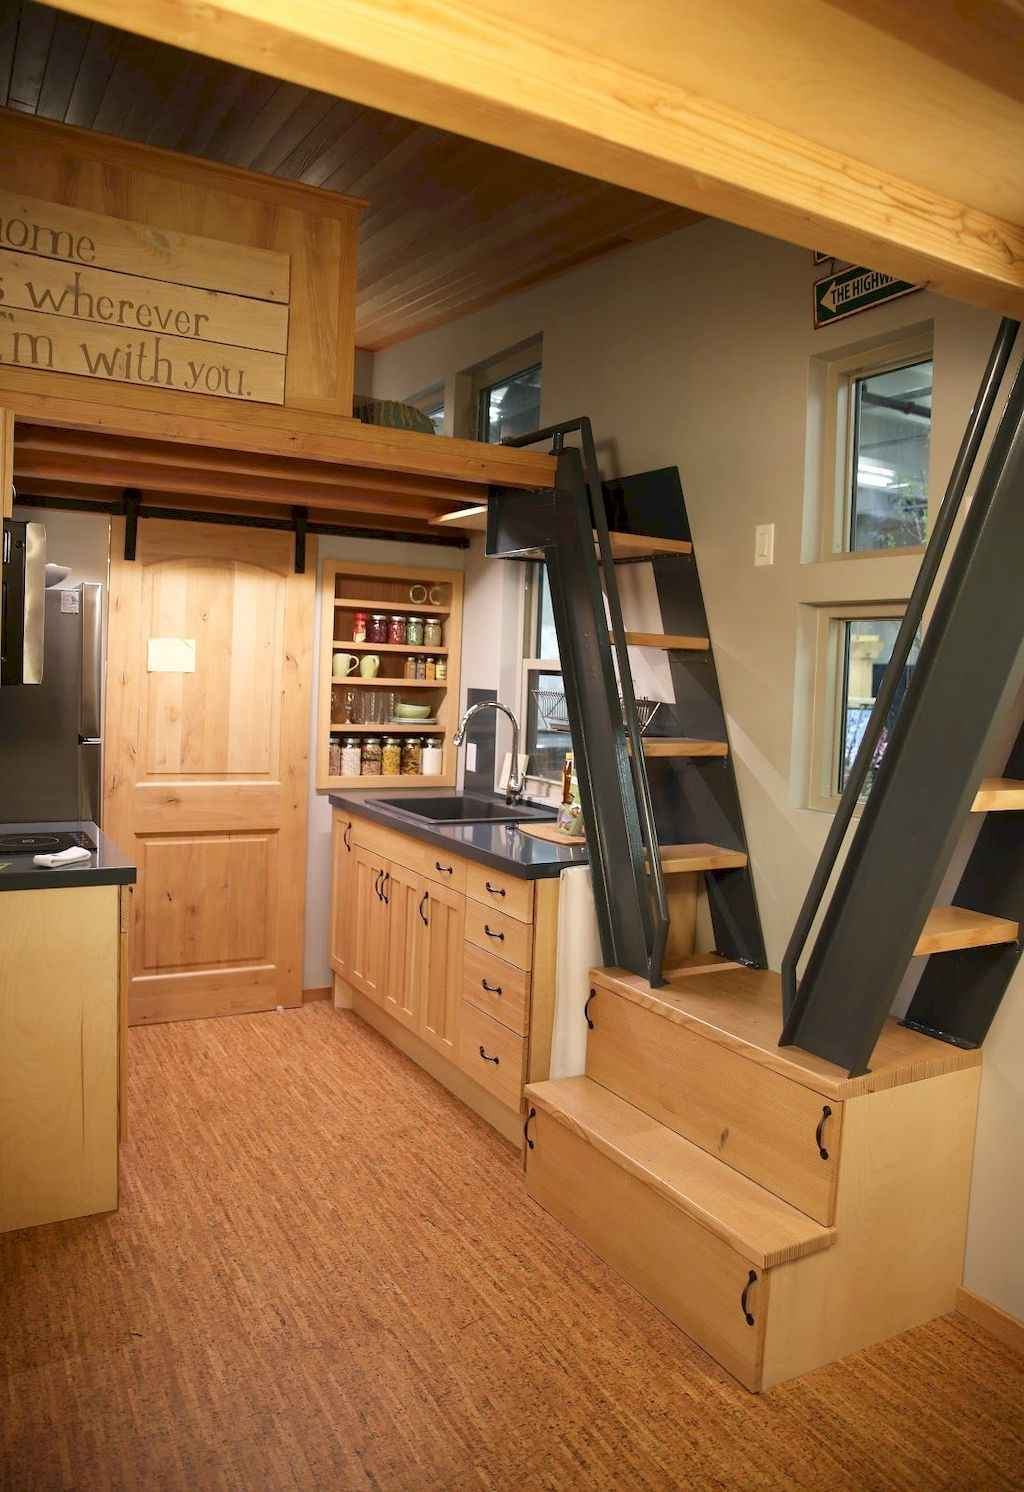 Clever Tiny House Kitchen Decor Ideas 65 - 50+ Kitchen Interior Design Ideas For Small Houses Pics